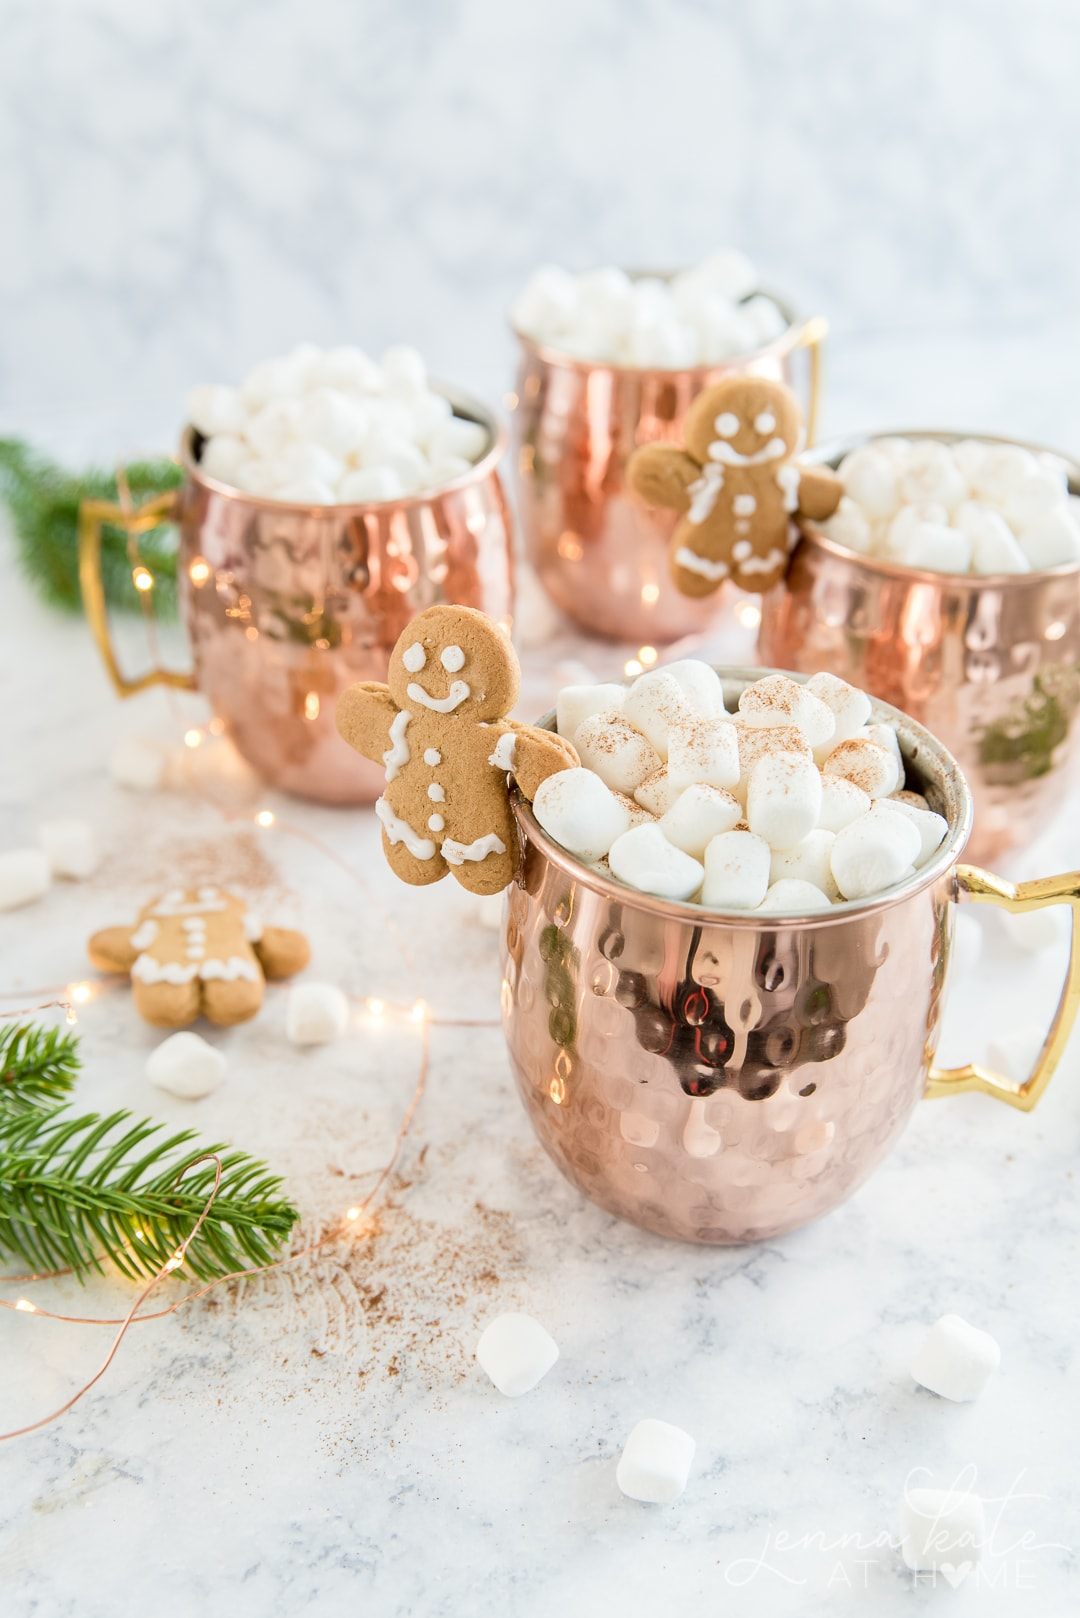 Copper mugs filled with gingerbread hot chocolate and marshmallows with a gingerbread man mug buddy